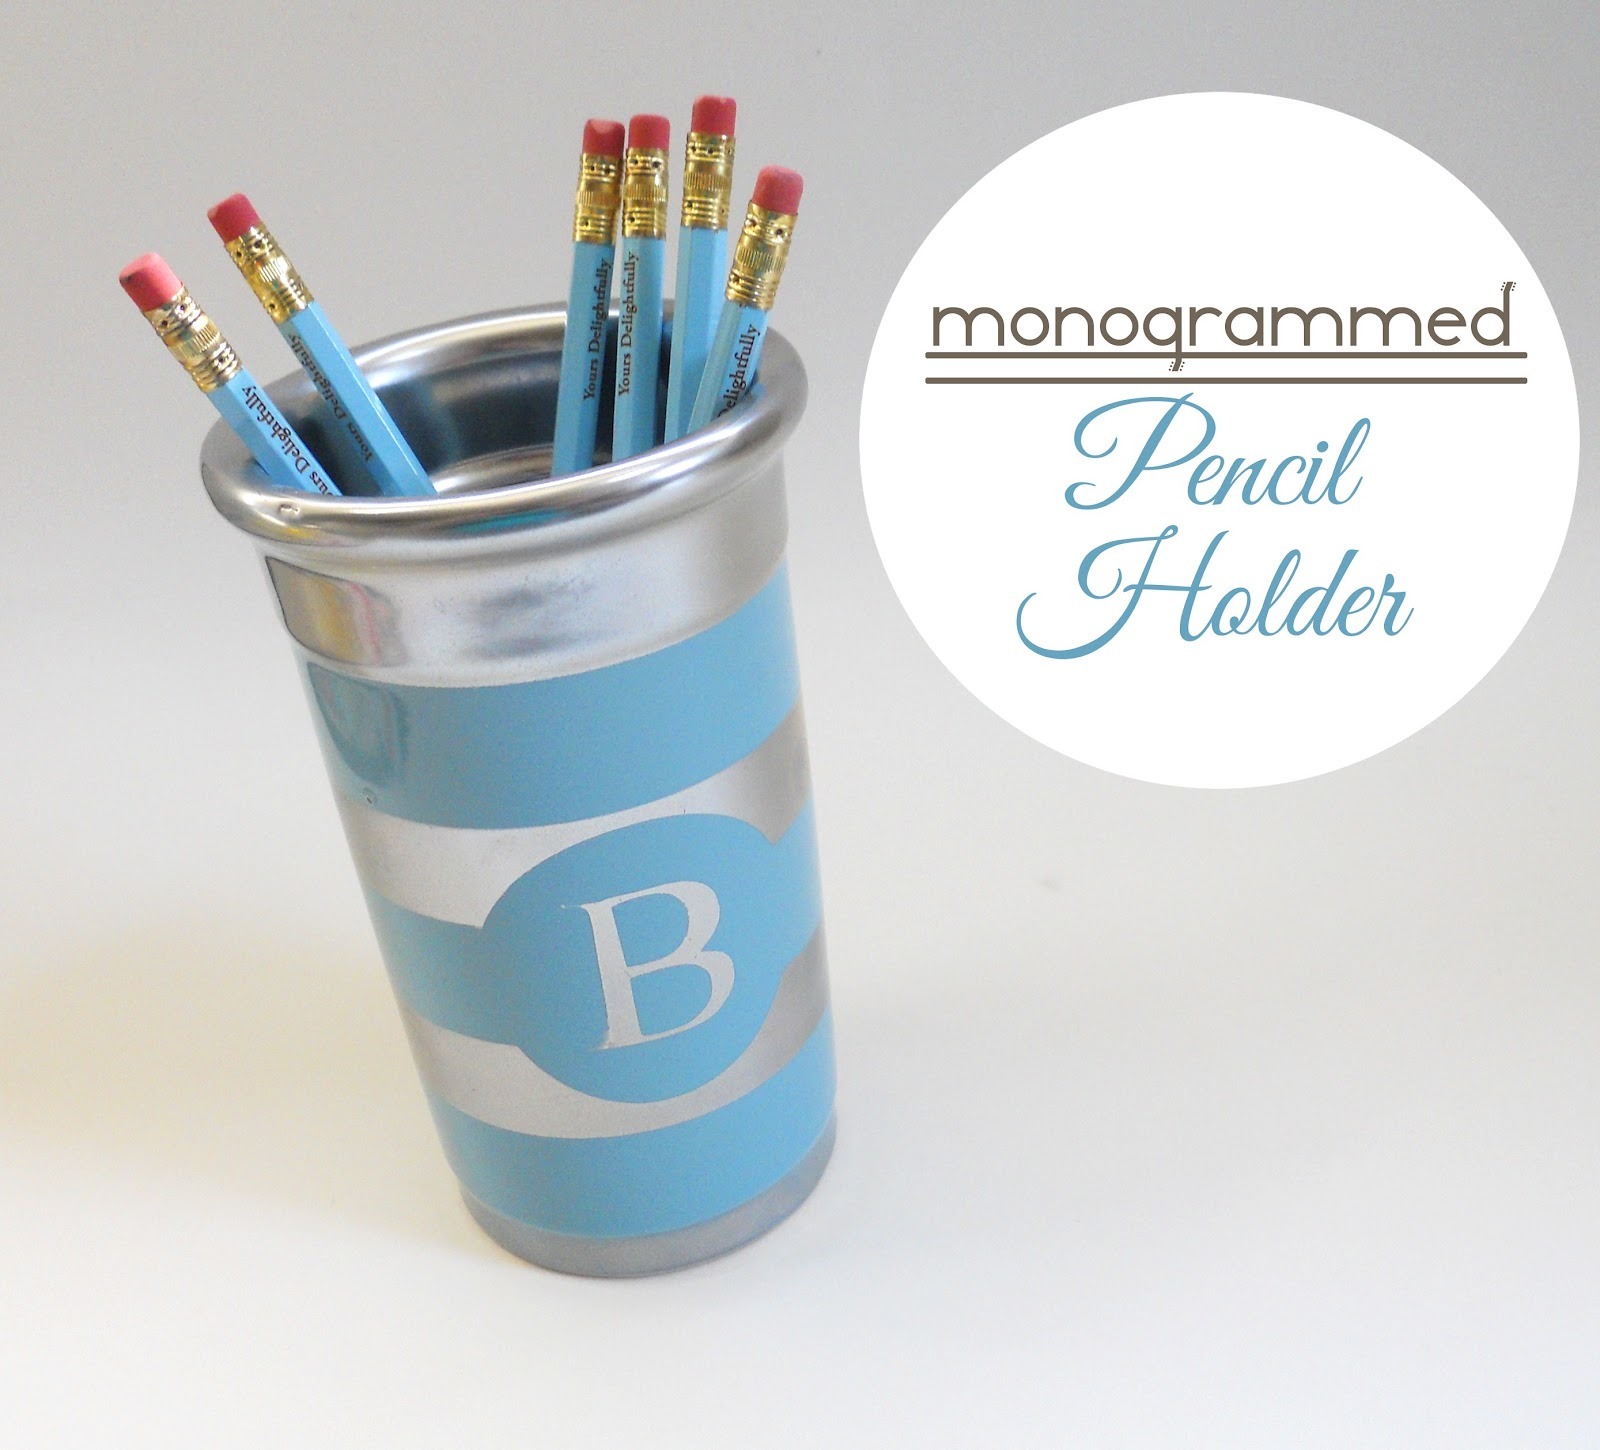 diy-monogram-pencil-holder